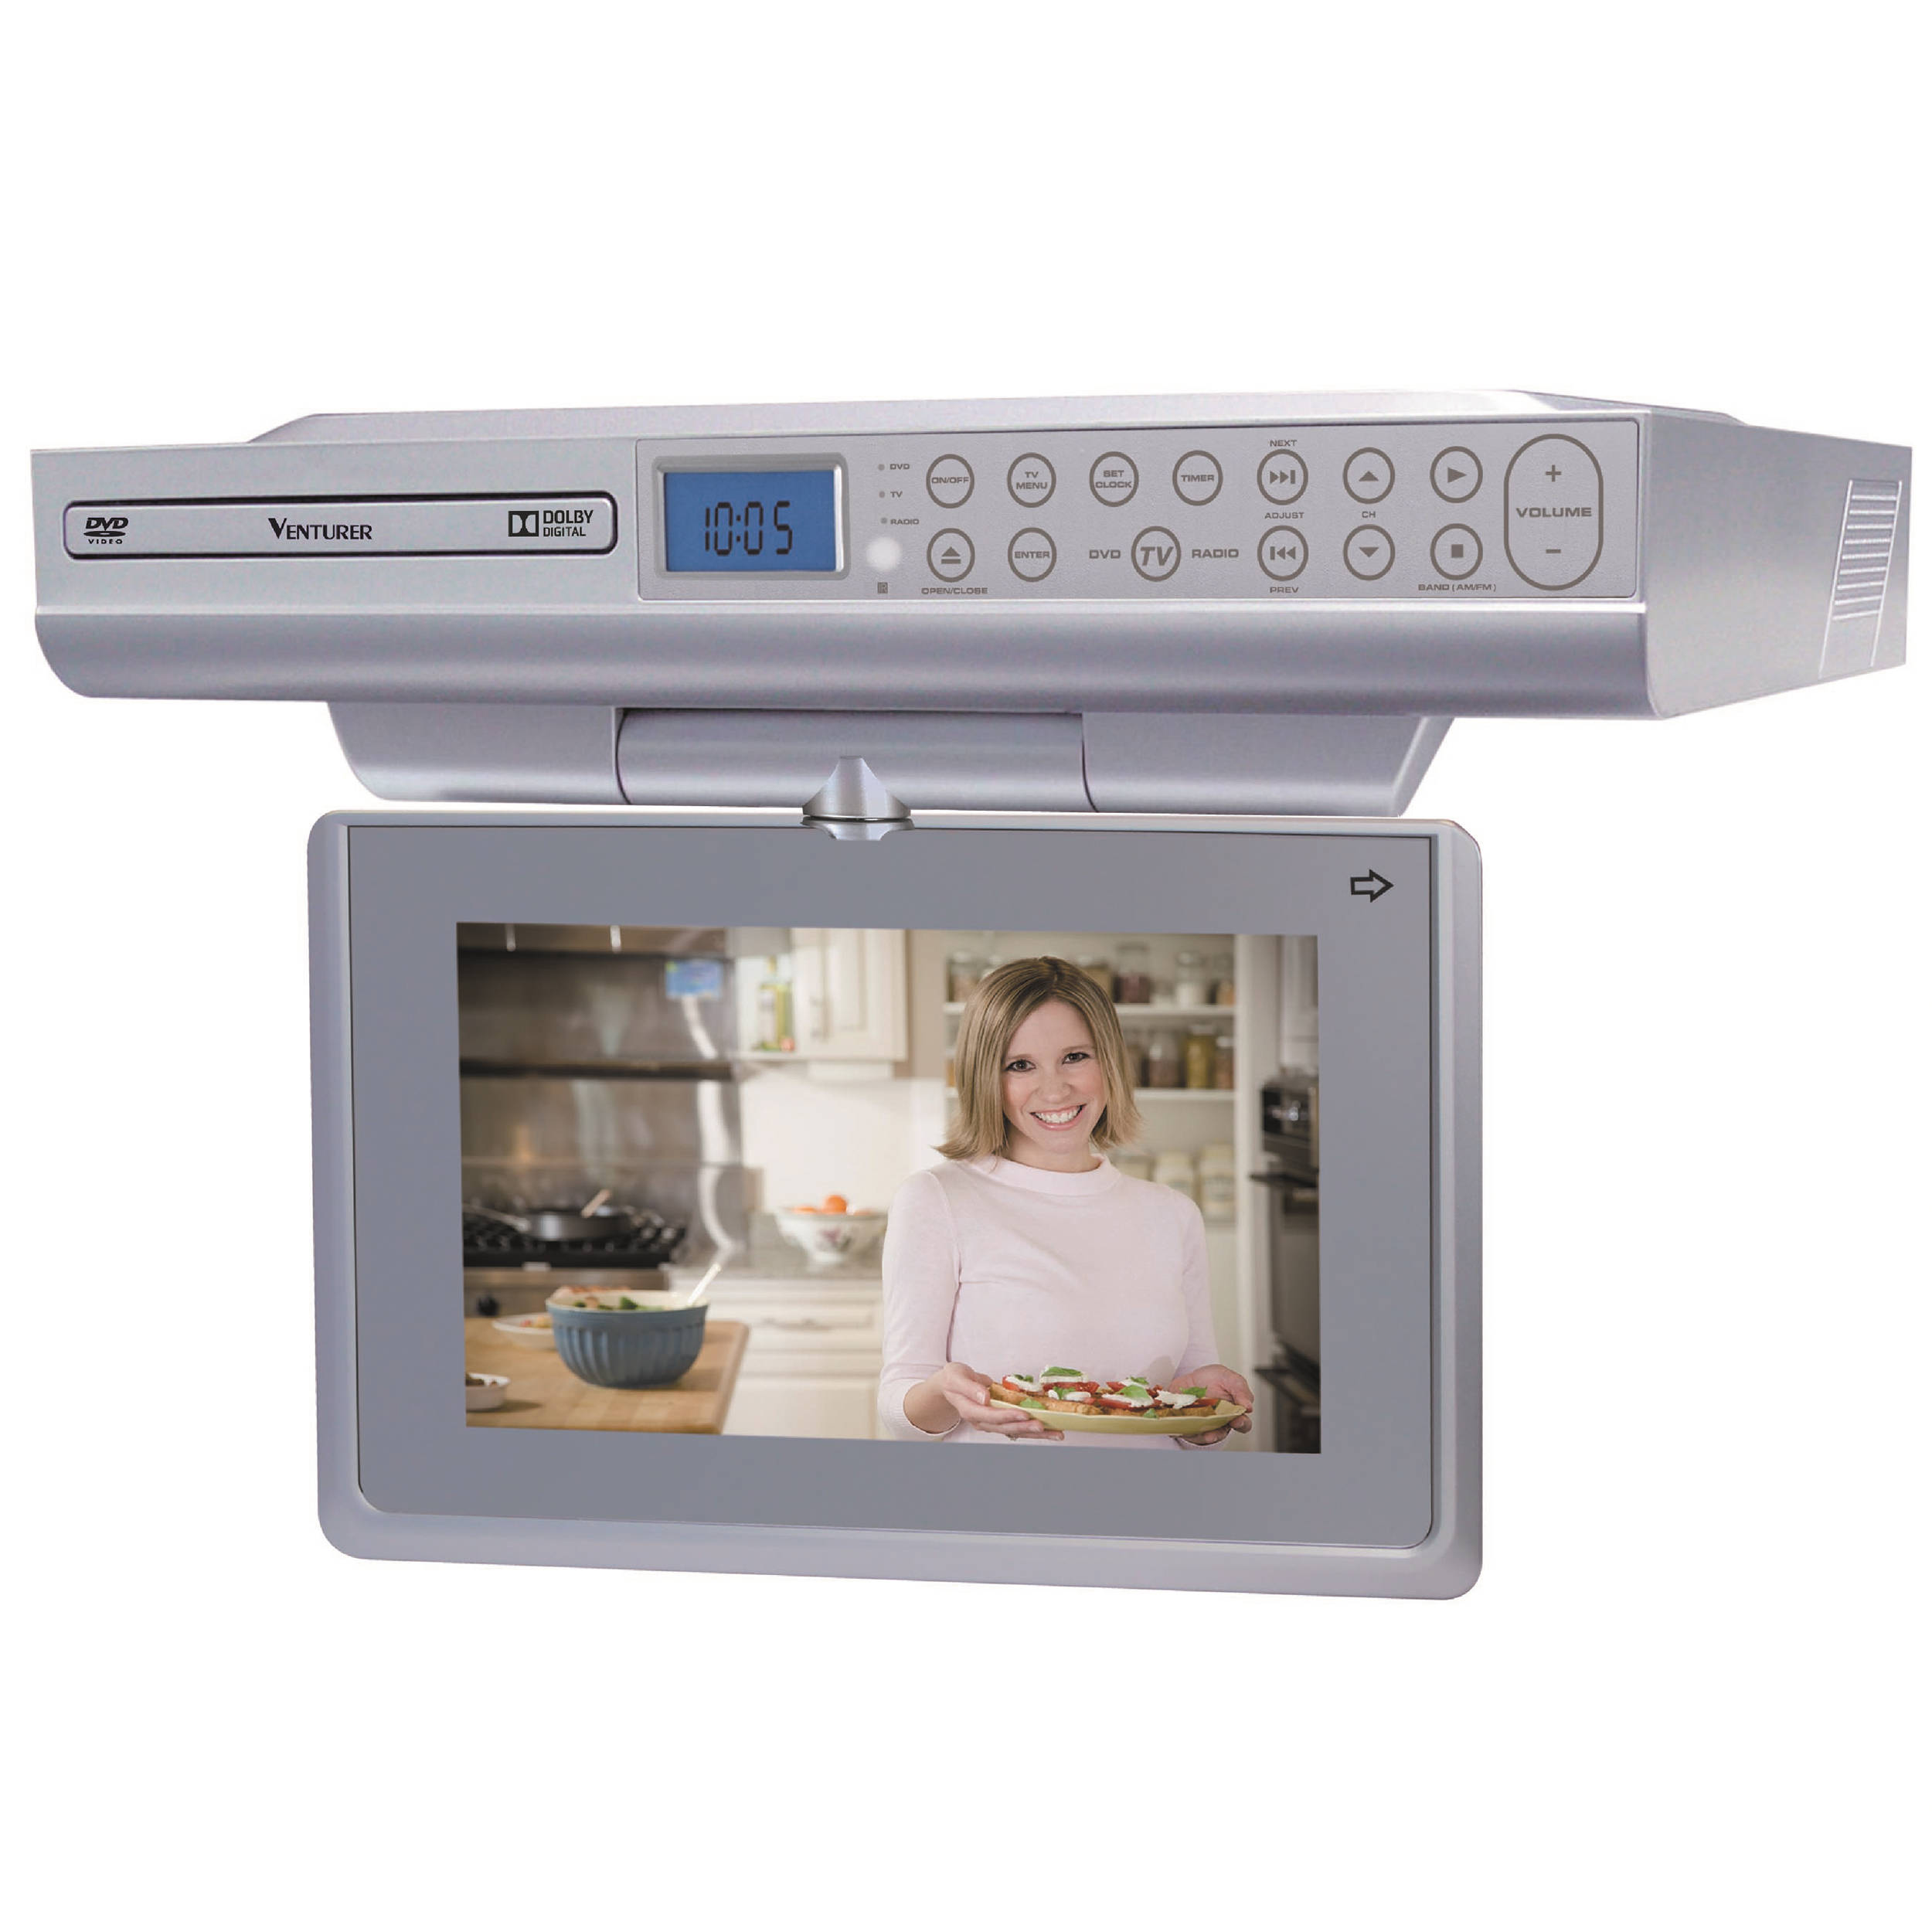 under cabinet kitchen tv dvd combo venturer klv39092 9 quot kitchen lcd tv dvd combo klv39092 b amp h 27489